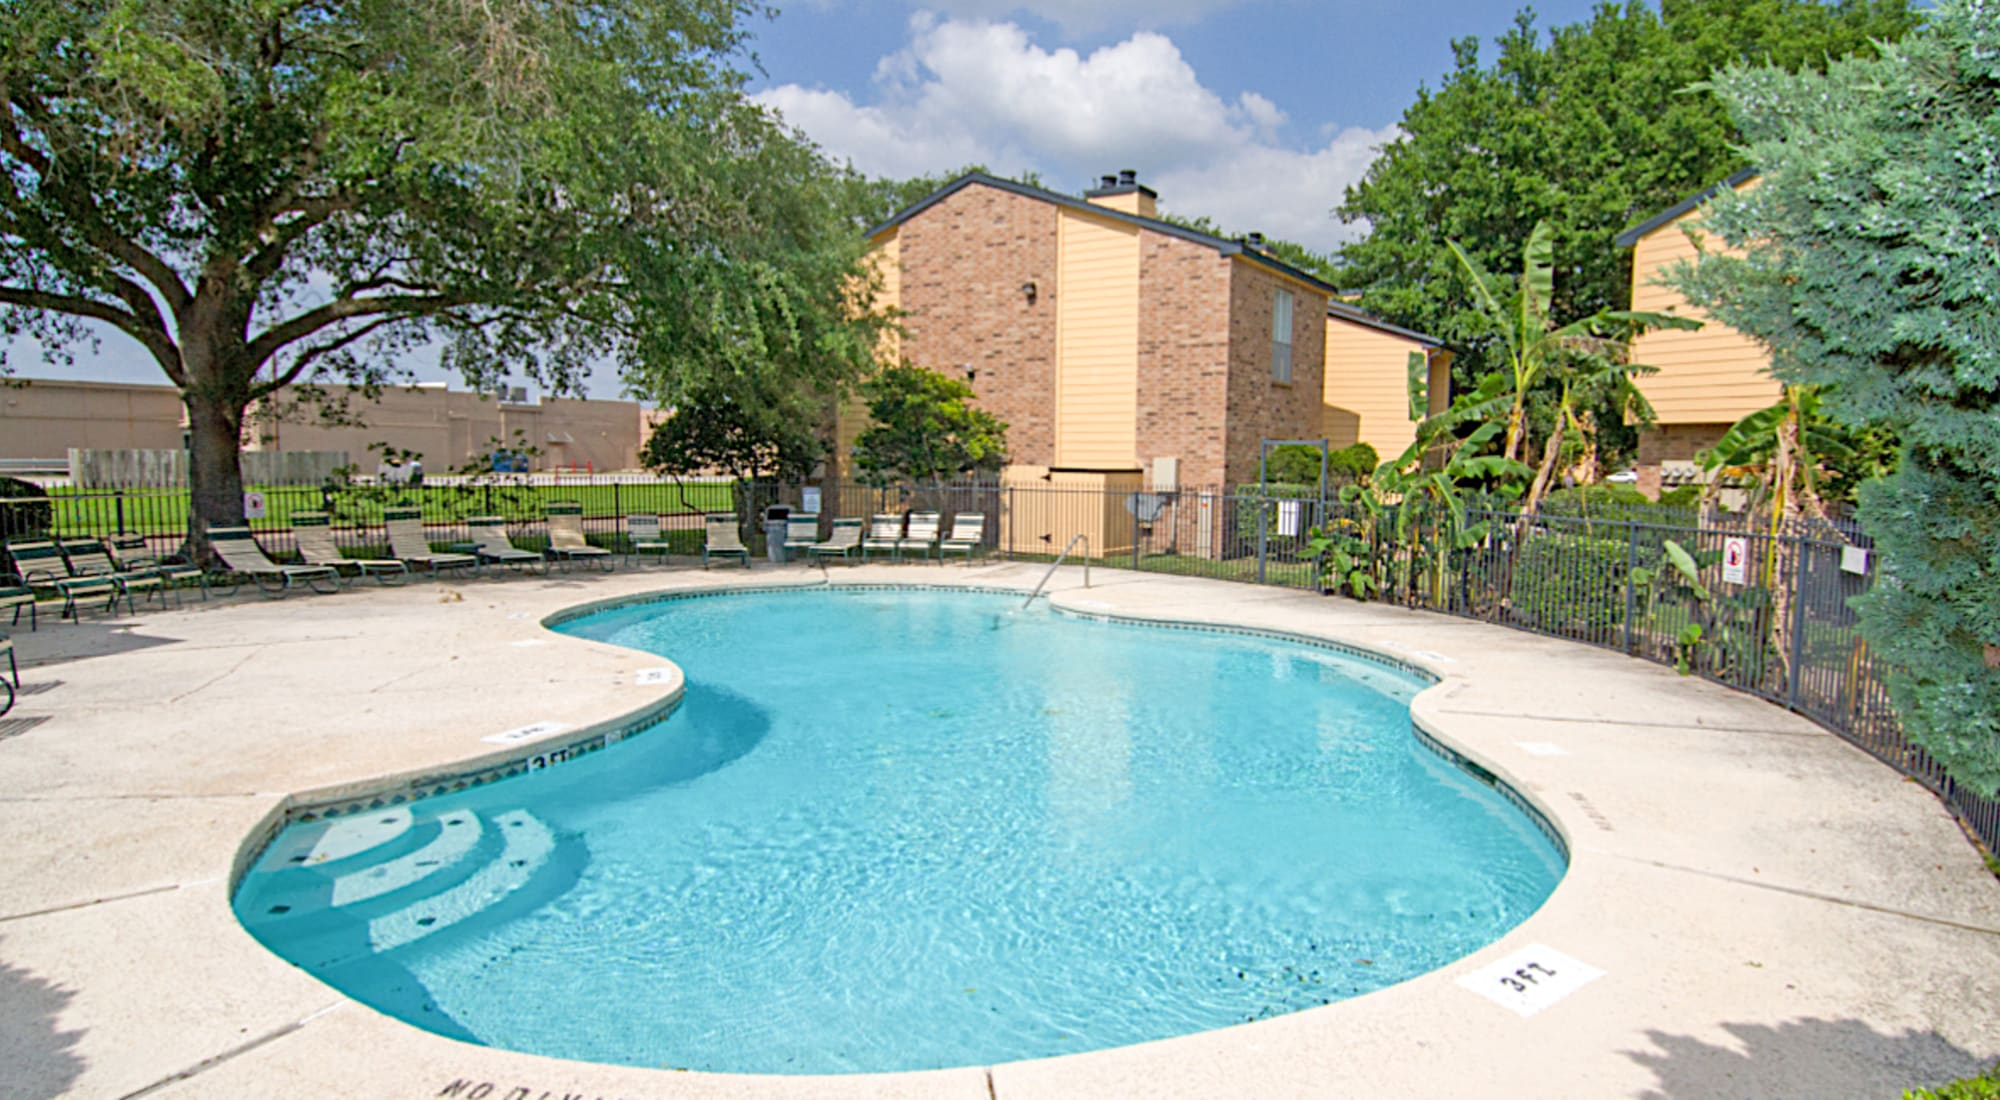 Meadow Park Apartments apartments in Alvin, TX